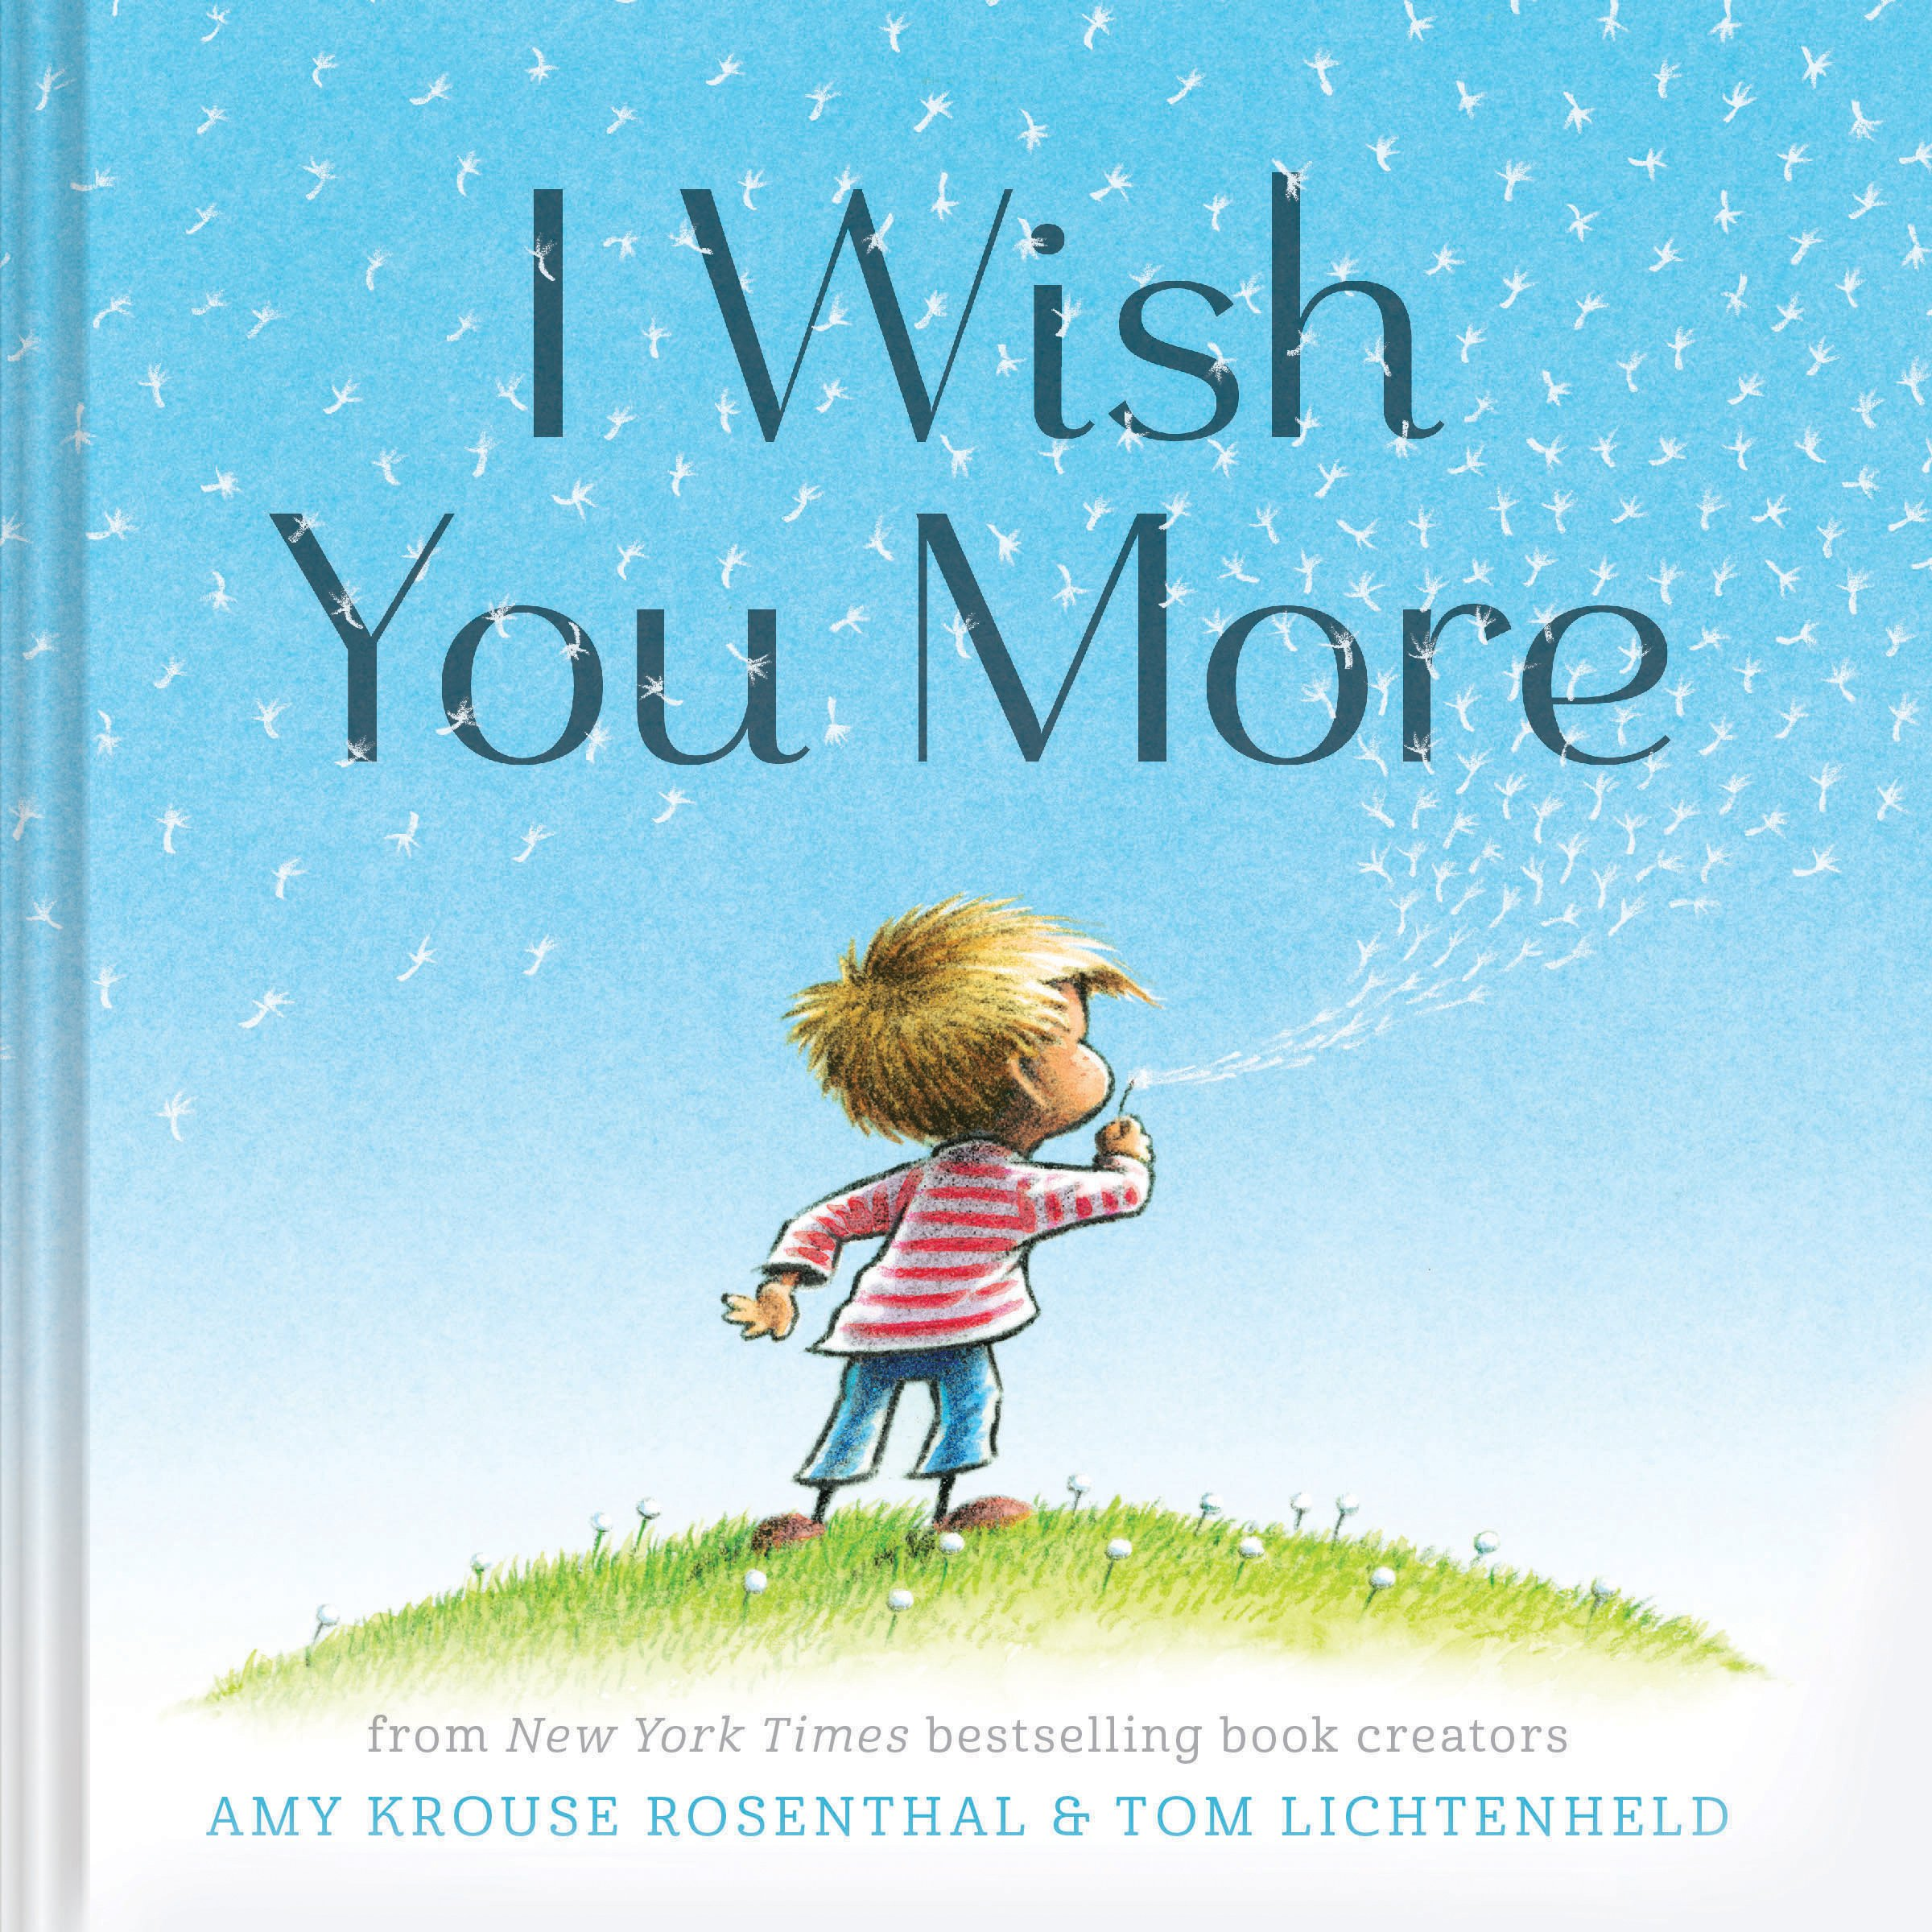 I Wish You More: Amazon.es: Vv.Aa, Vv.Aa: Libros en idiomas ...